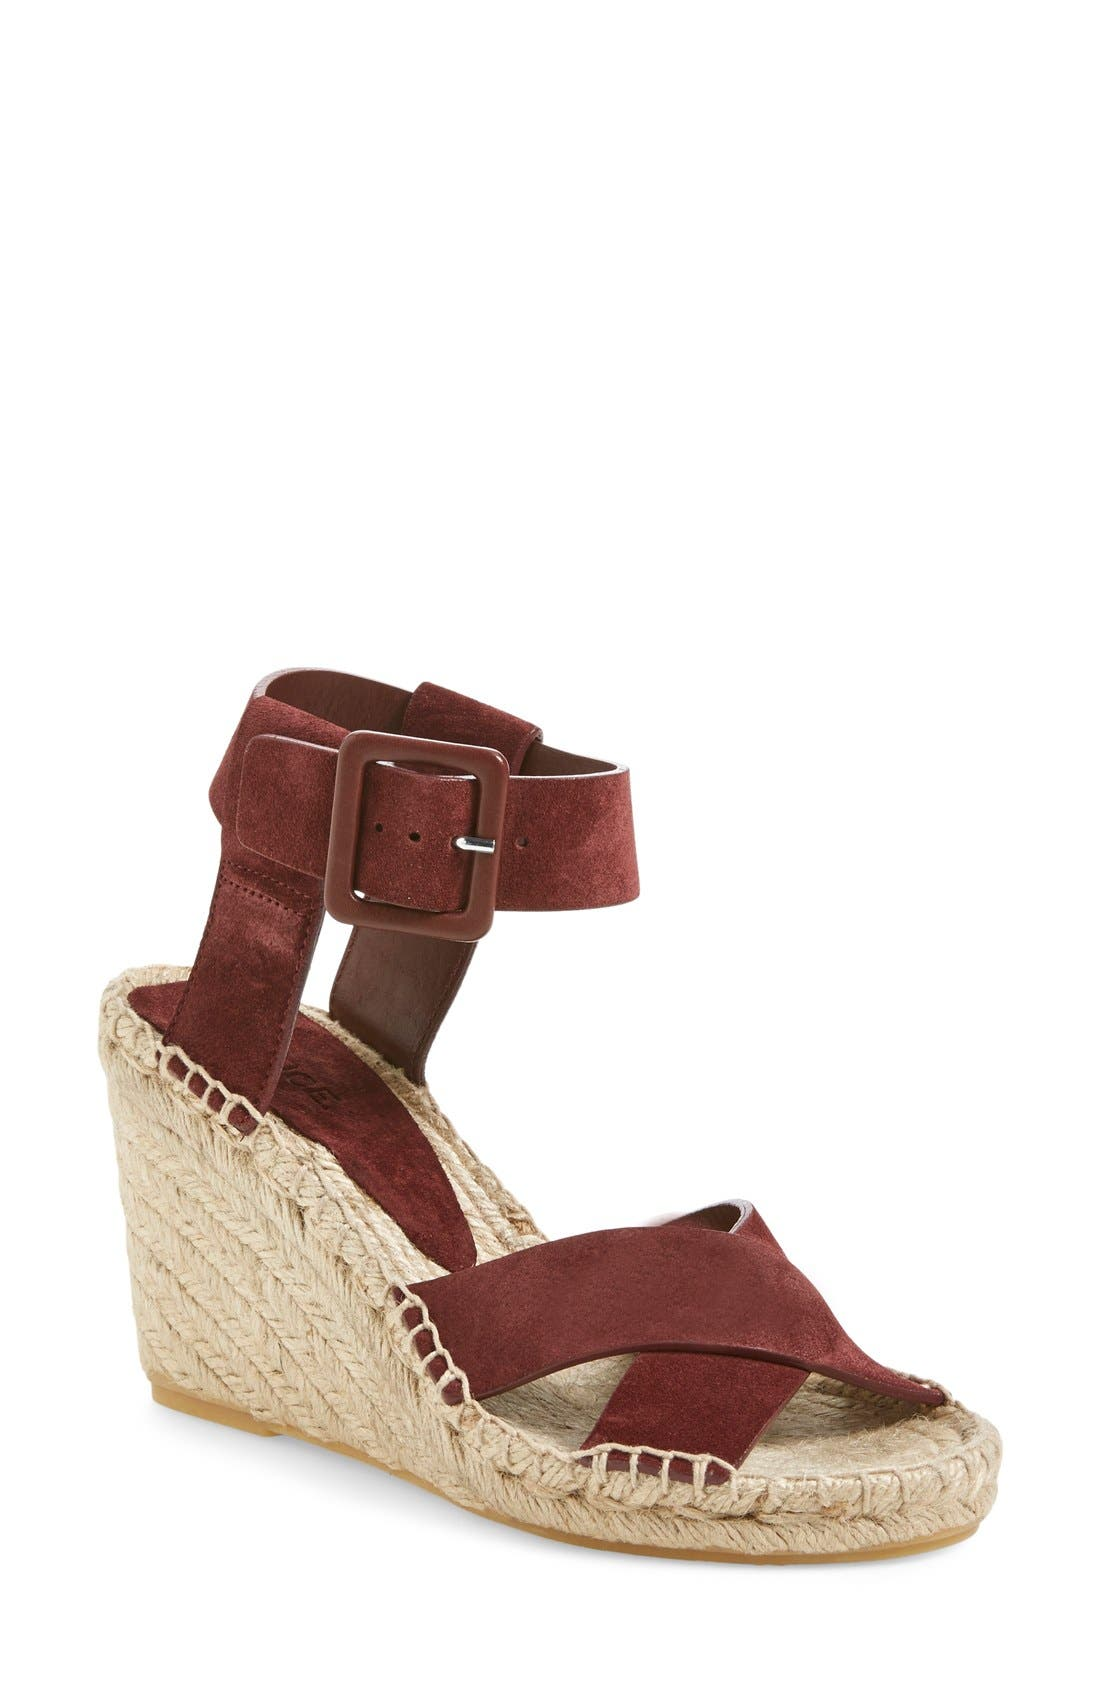 'Stefania' Espadrille Wedge Sandal,                             Main thumbnail 1, color,                             200